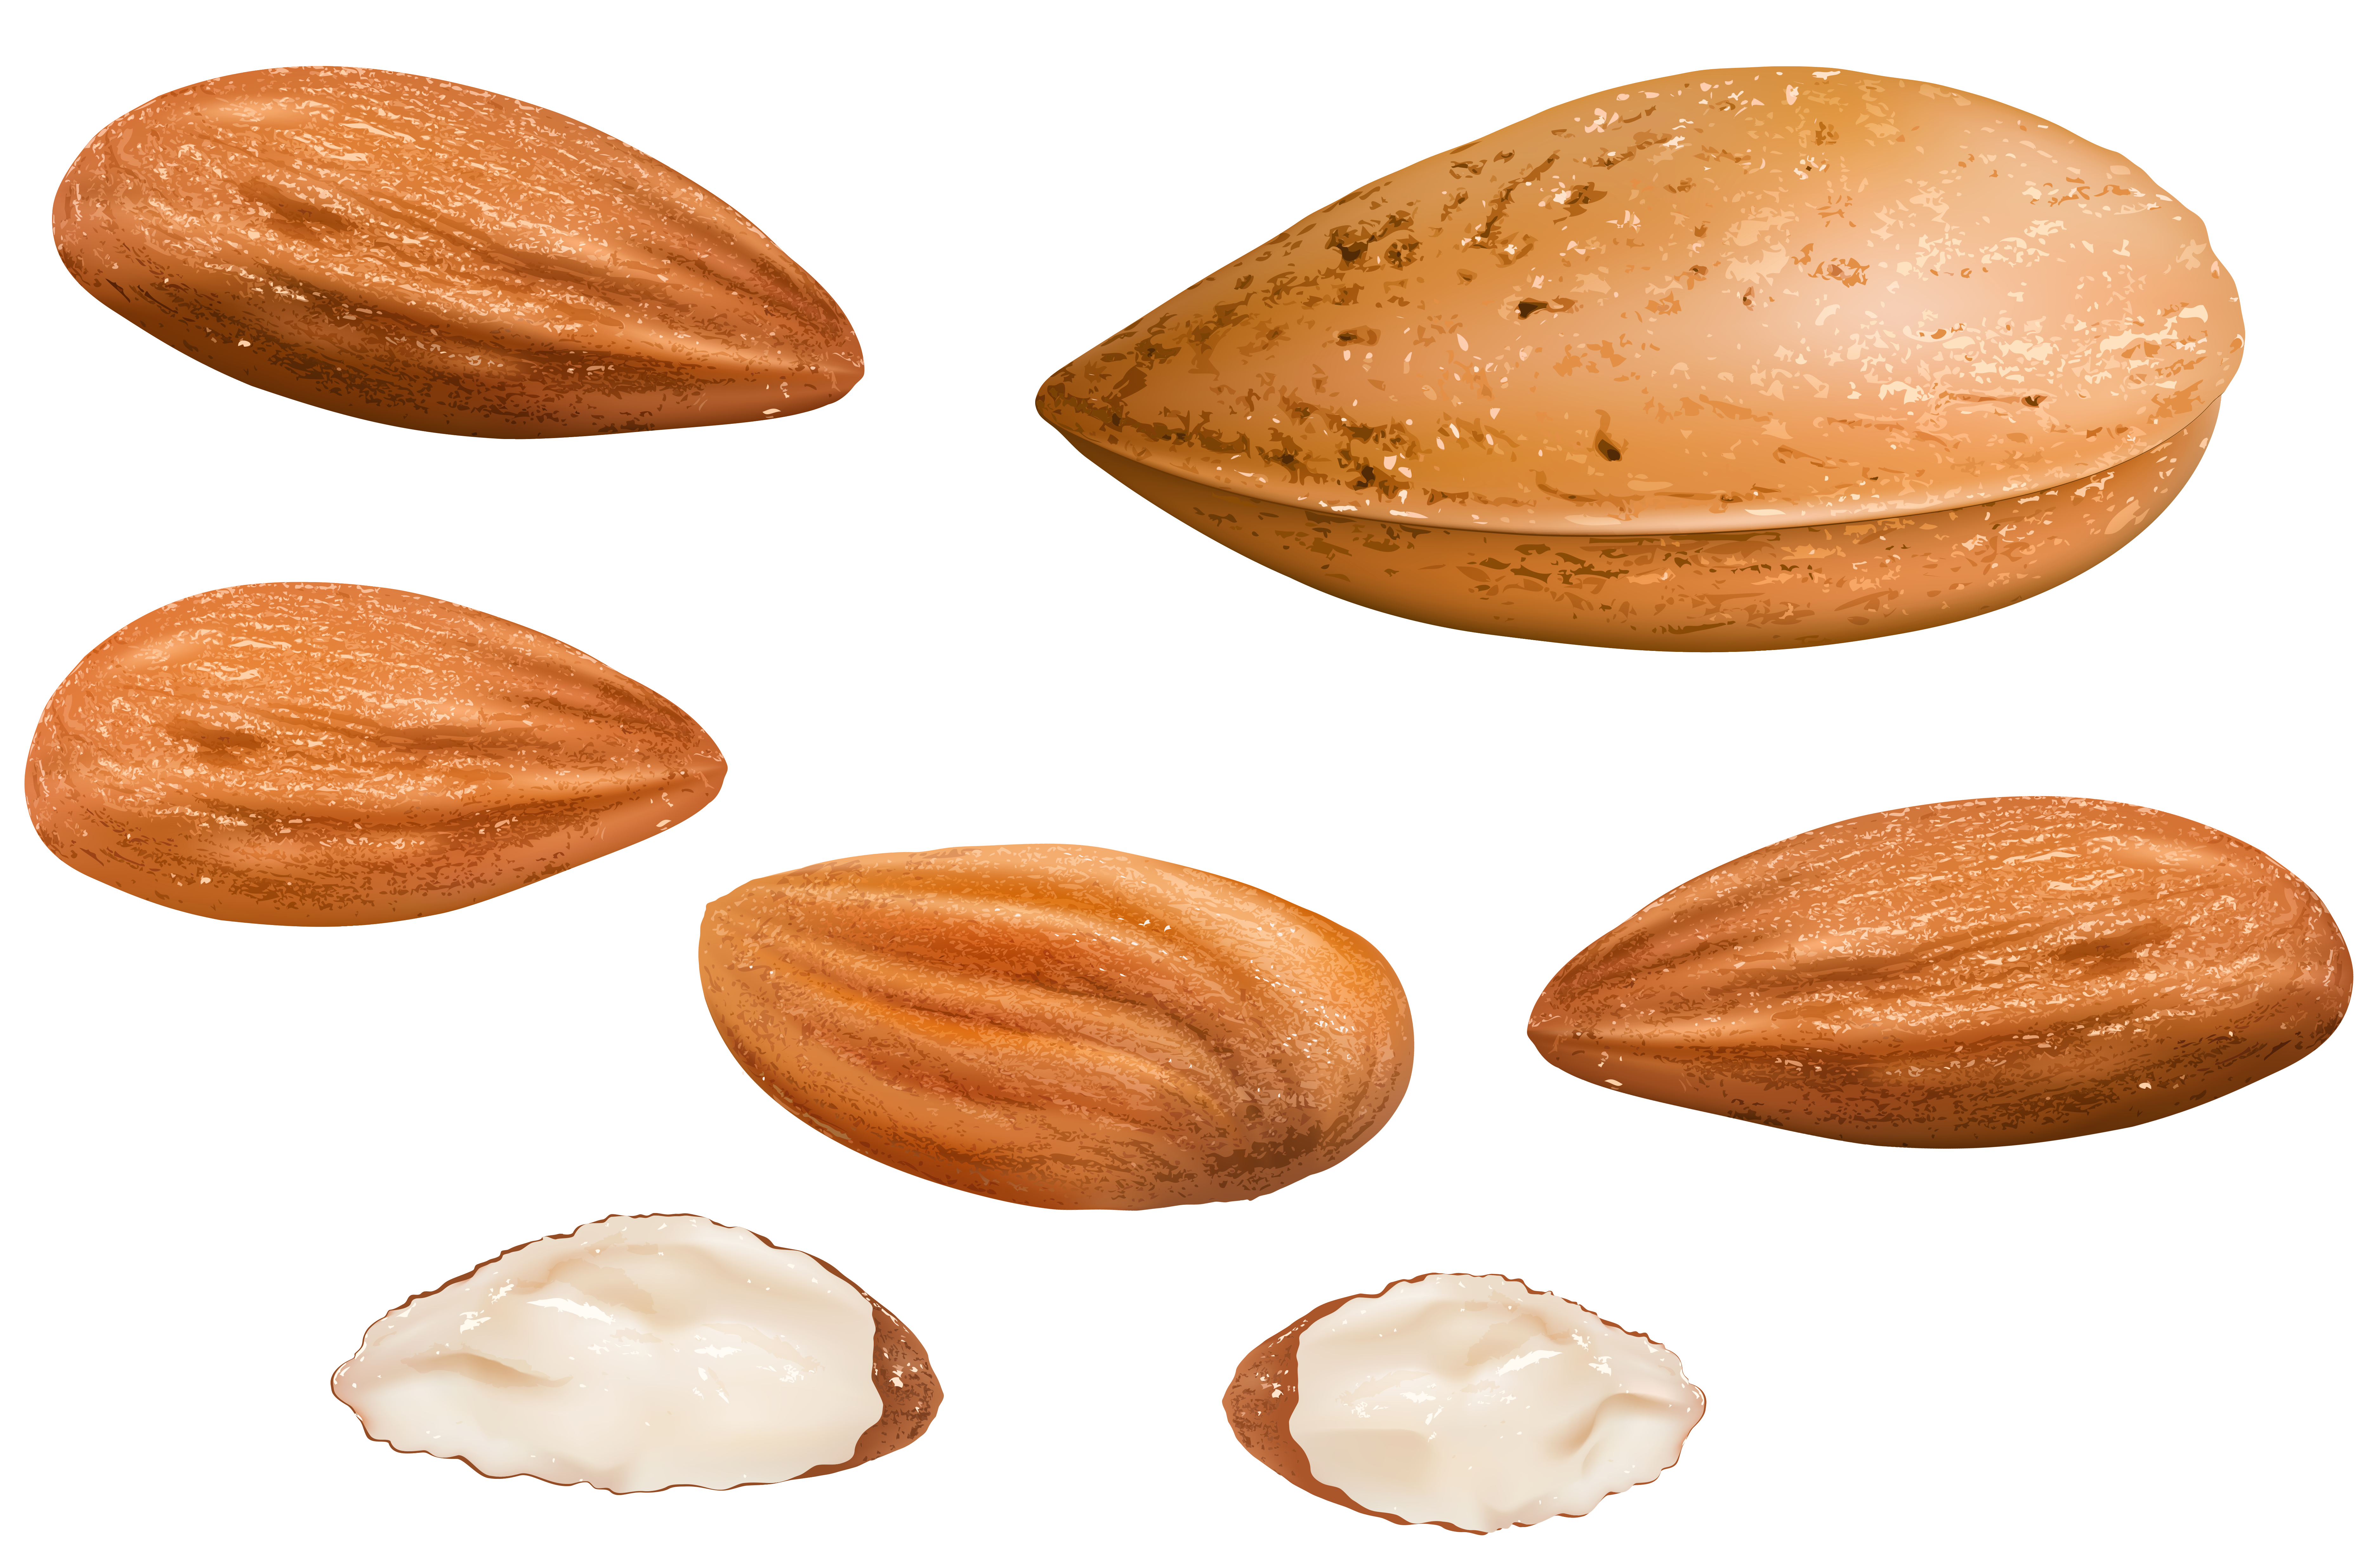 Nuts clipart different seed. Almonds png image gallery